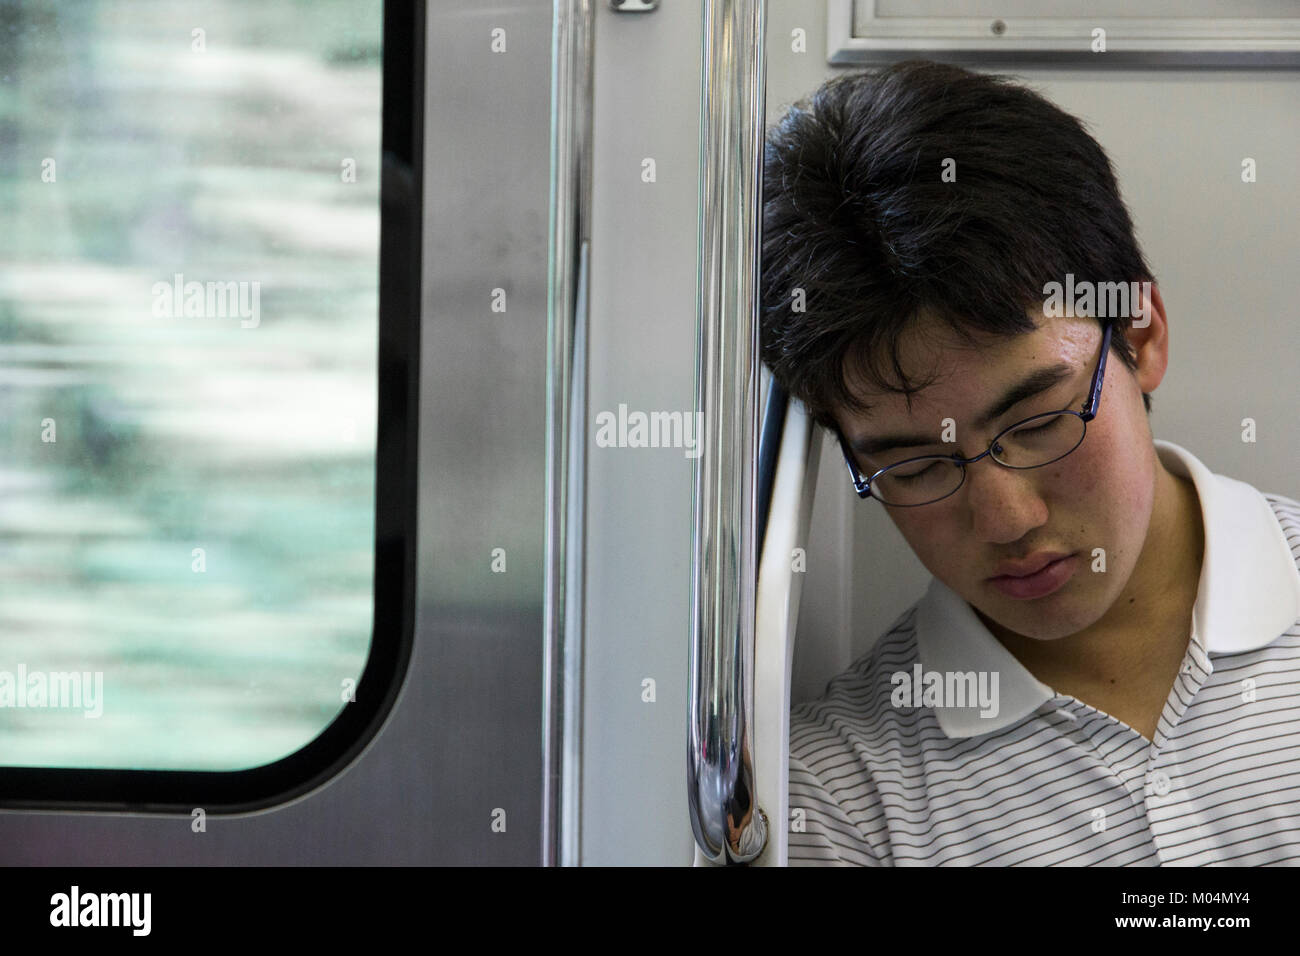 Search Results Train On Japanese Girls Tube